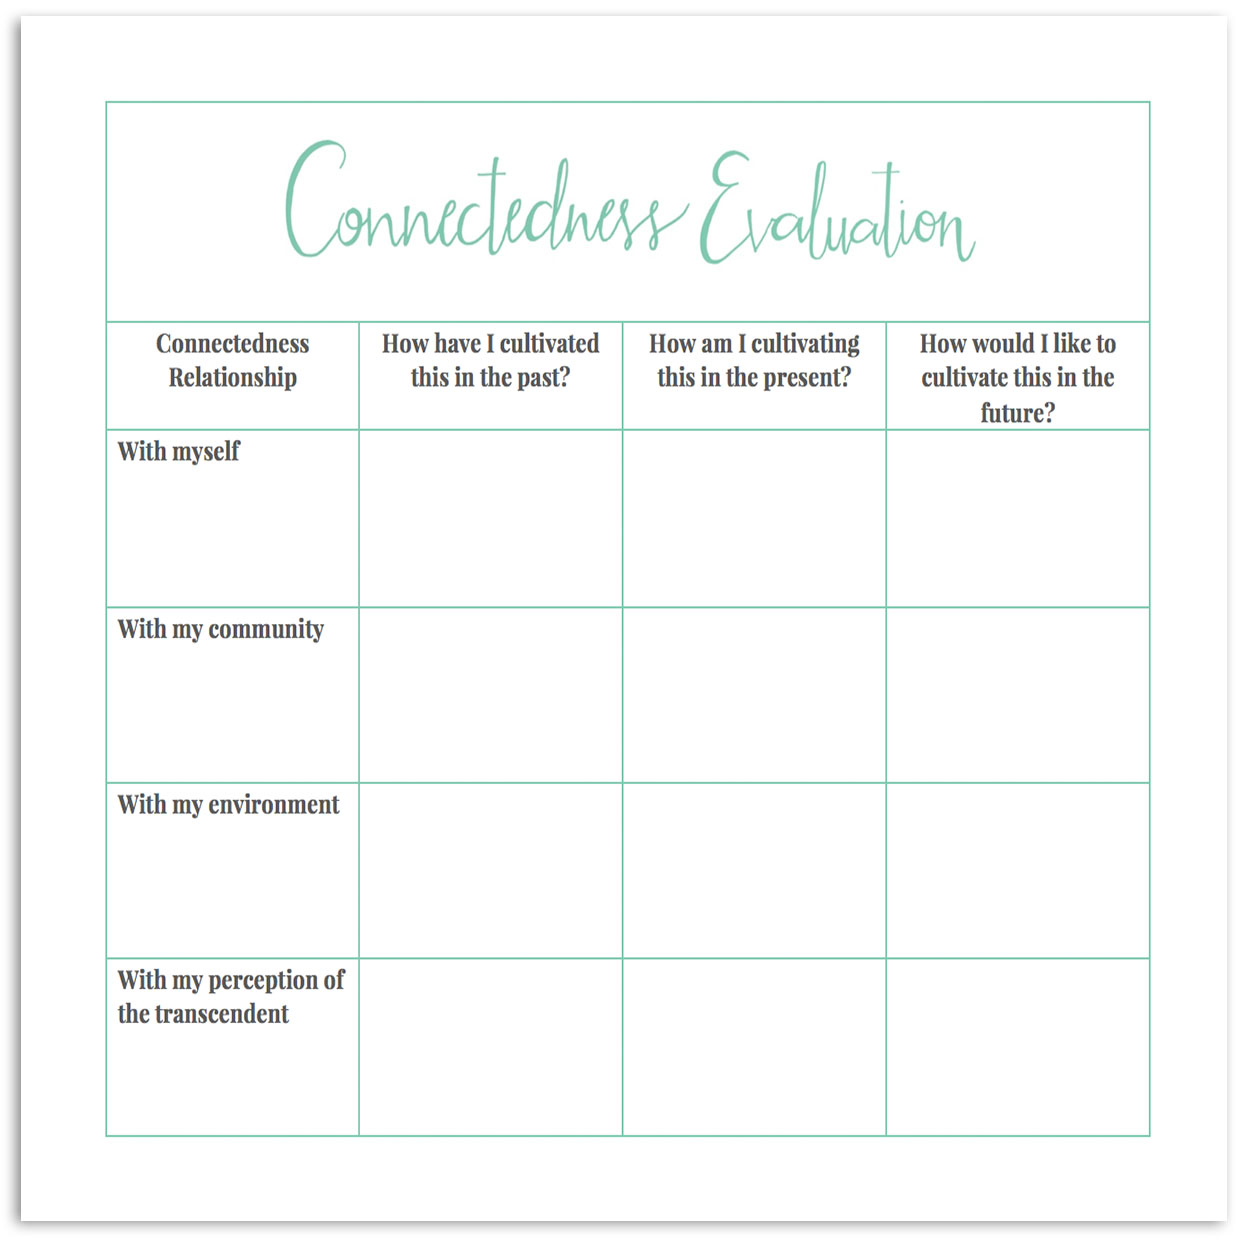 Connectedness Evaluation